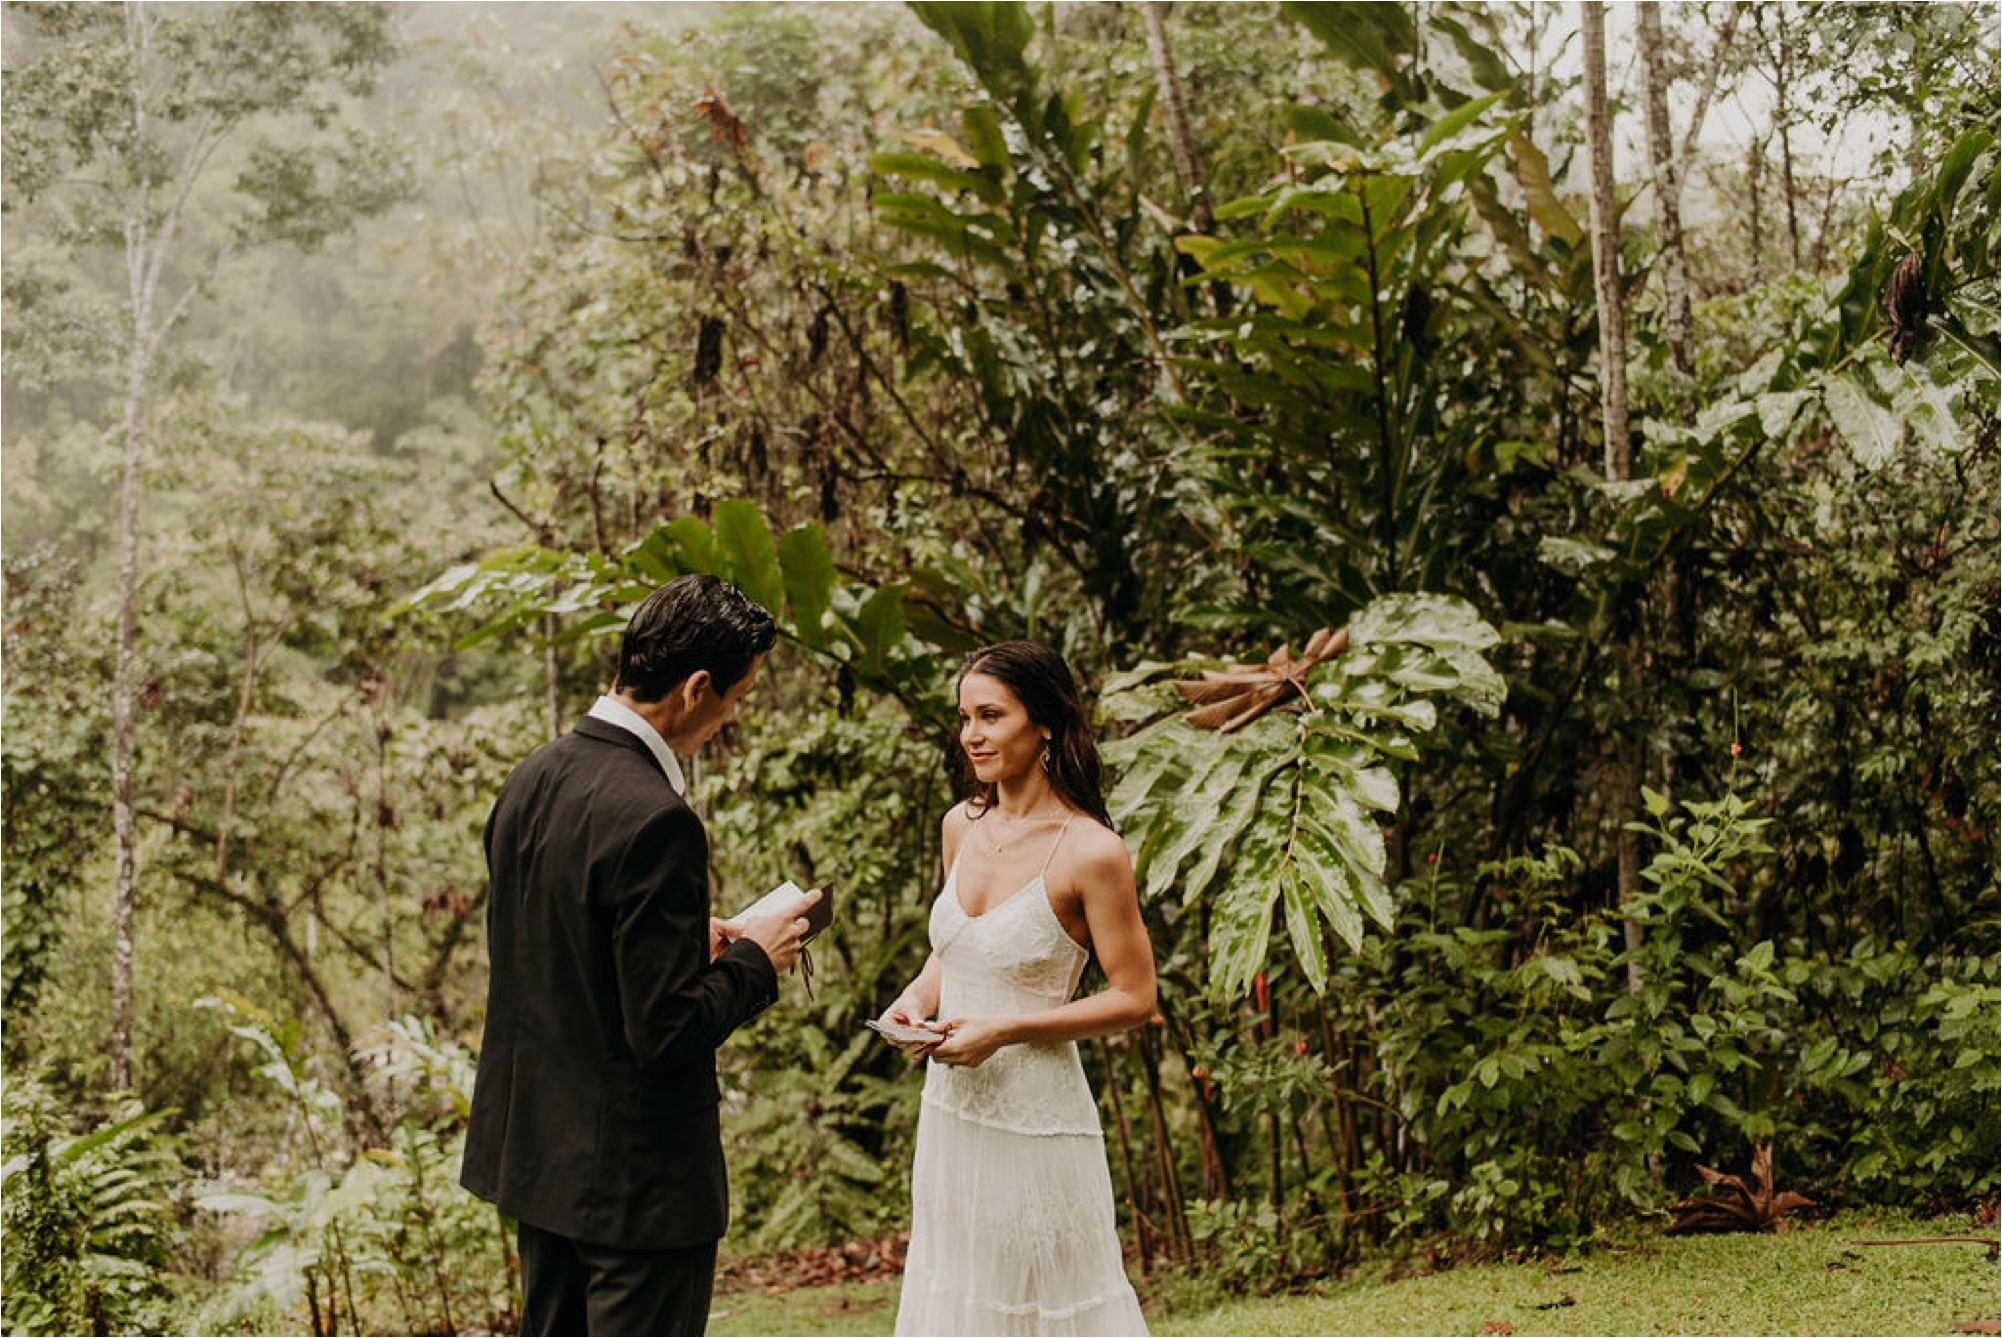 Costa Rica Elopement Wedding Photographer Pacuare Lodge_4095.jpg